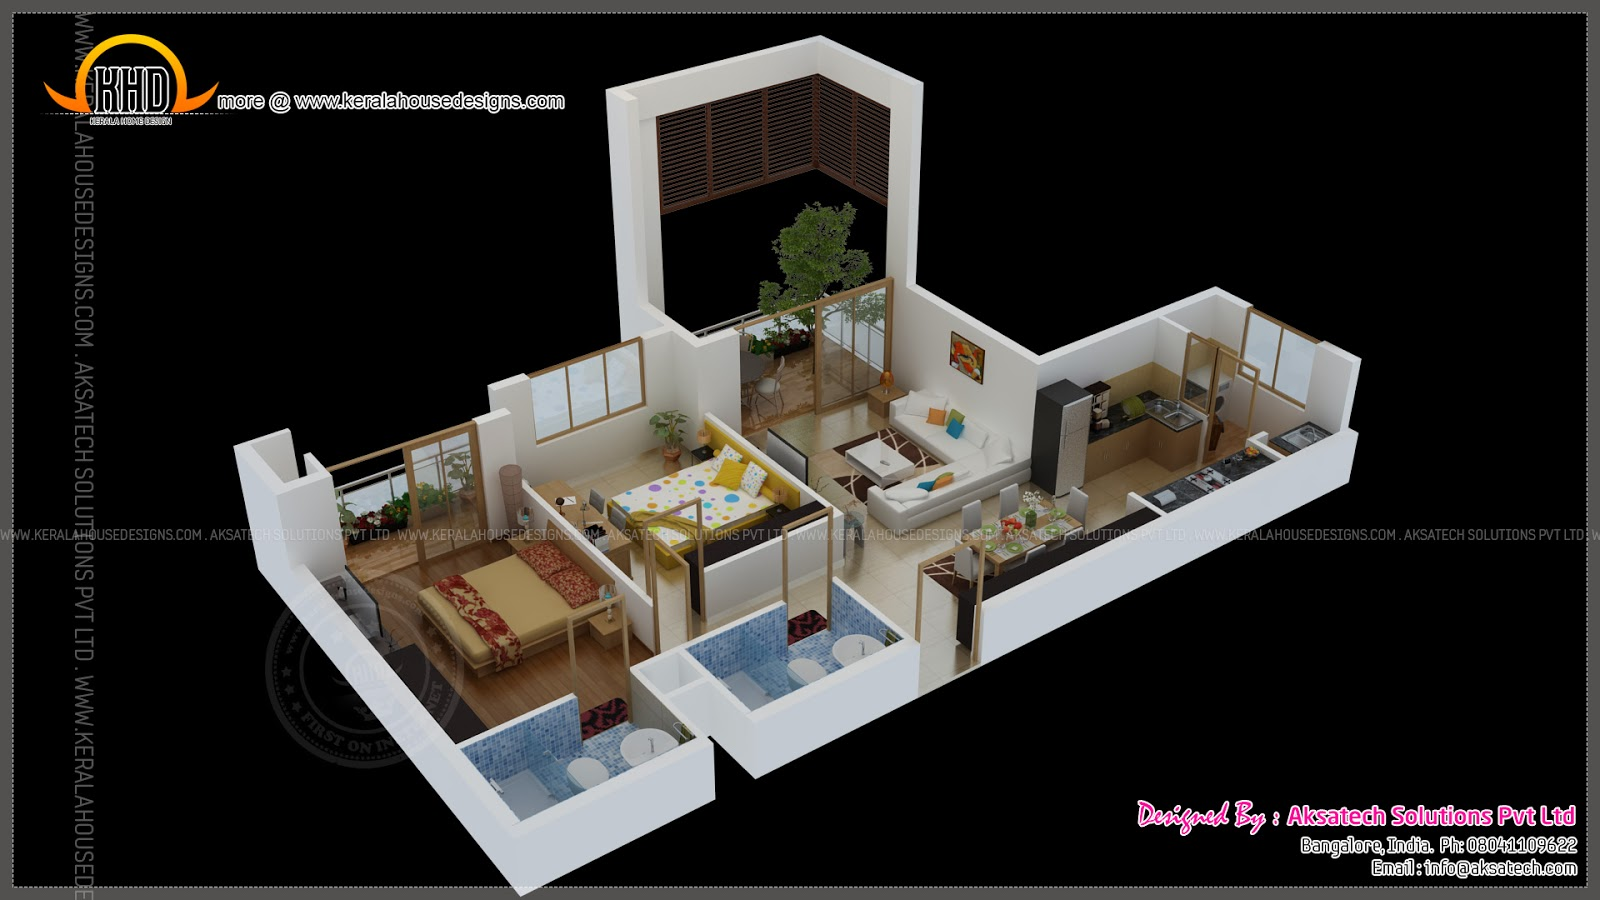 Isometric Drawings 3d By Aksatech Indian House Plans